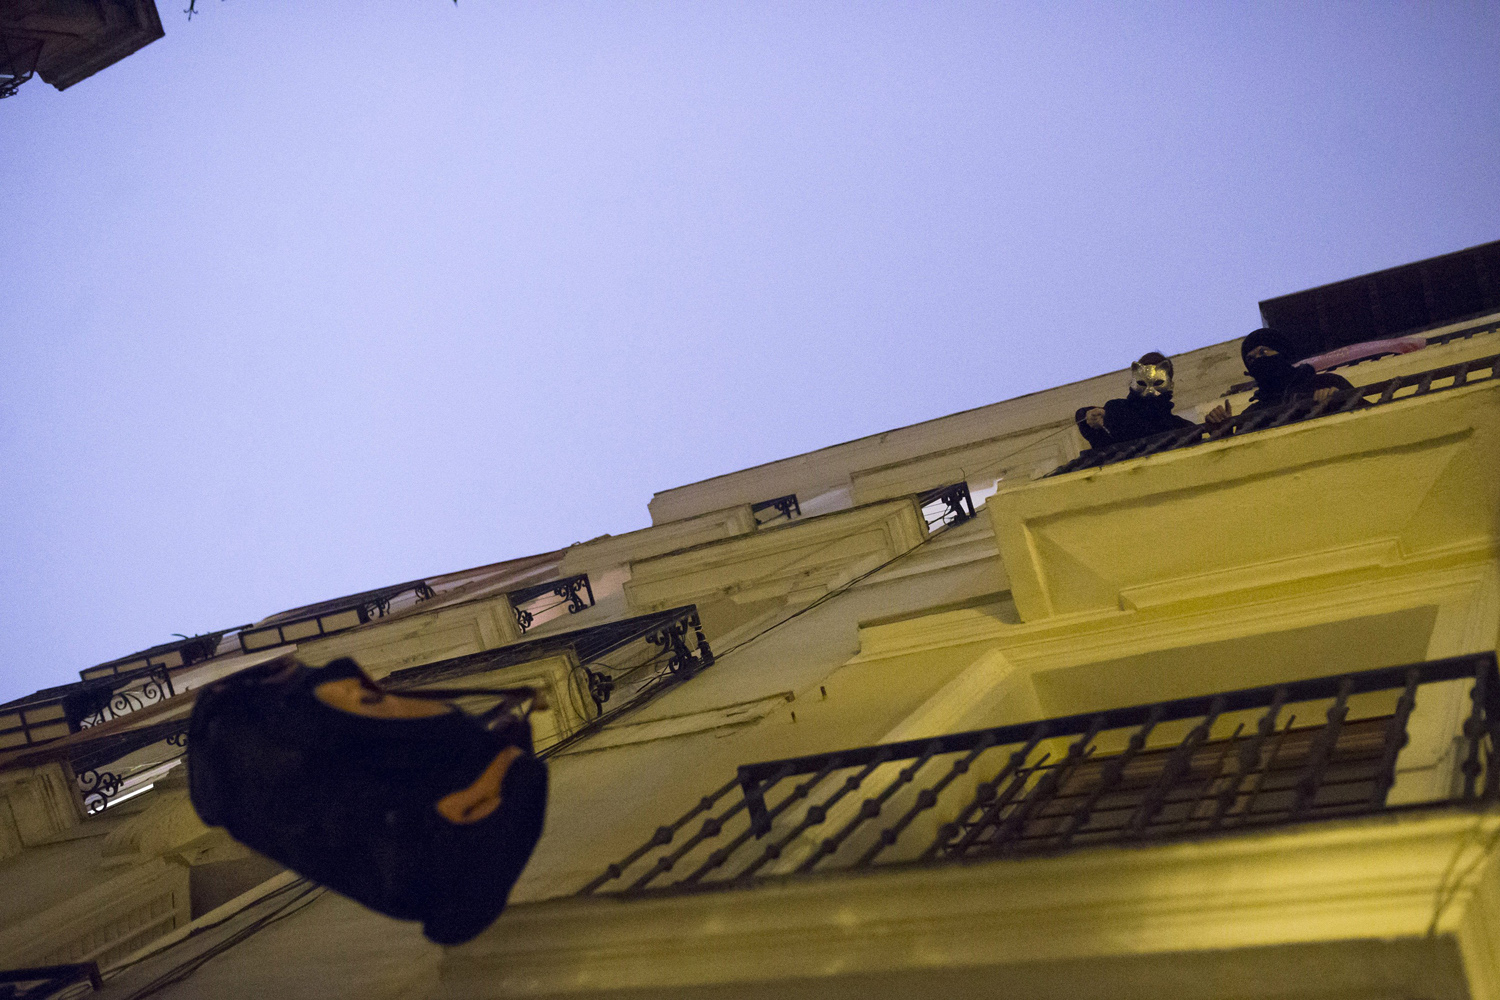 Jan. 5, 2014. Activists handle belongings after occupying an empty building in Madrid.